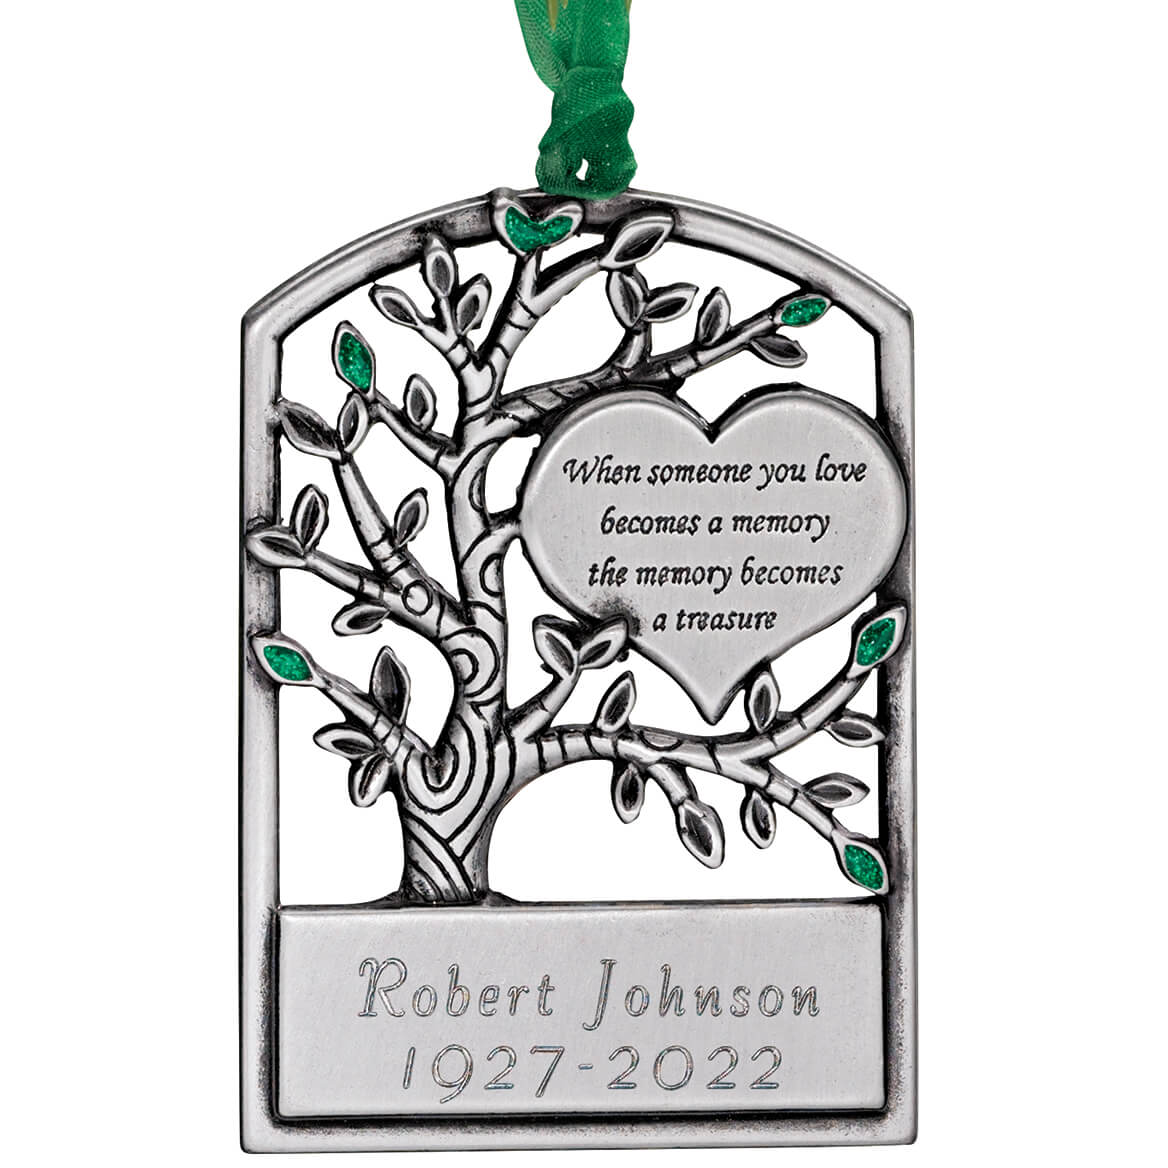 Personalized Pewter Memorial Tree Ornament - Miles Kimball